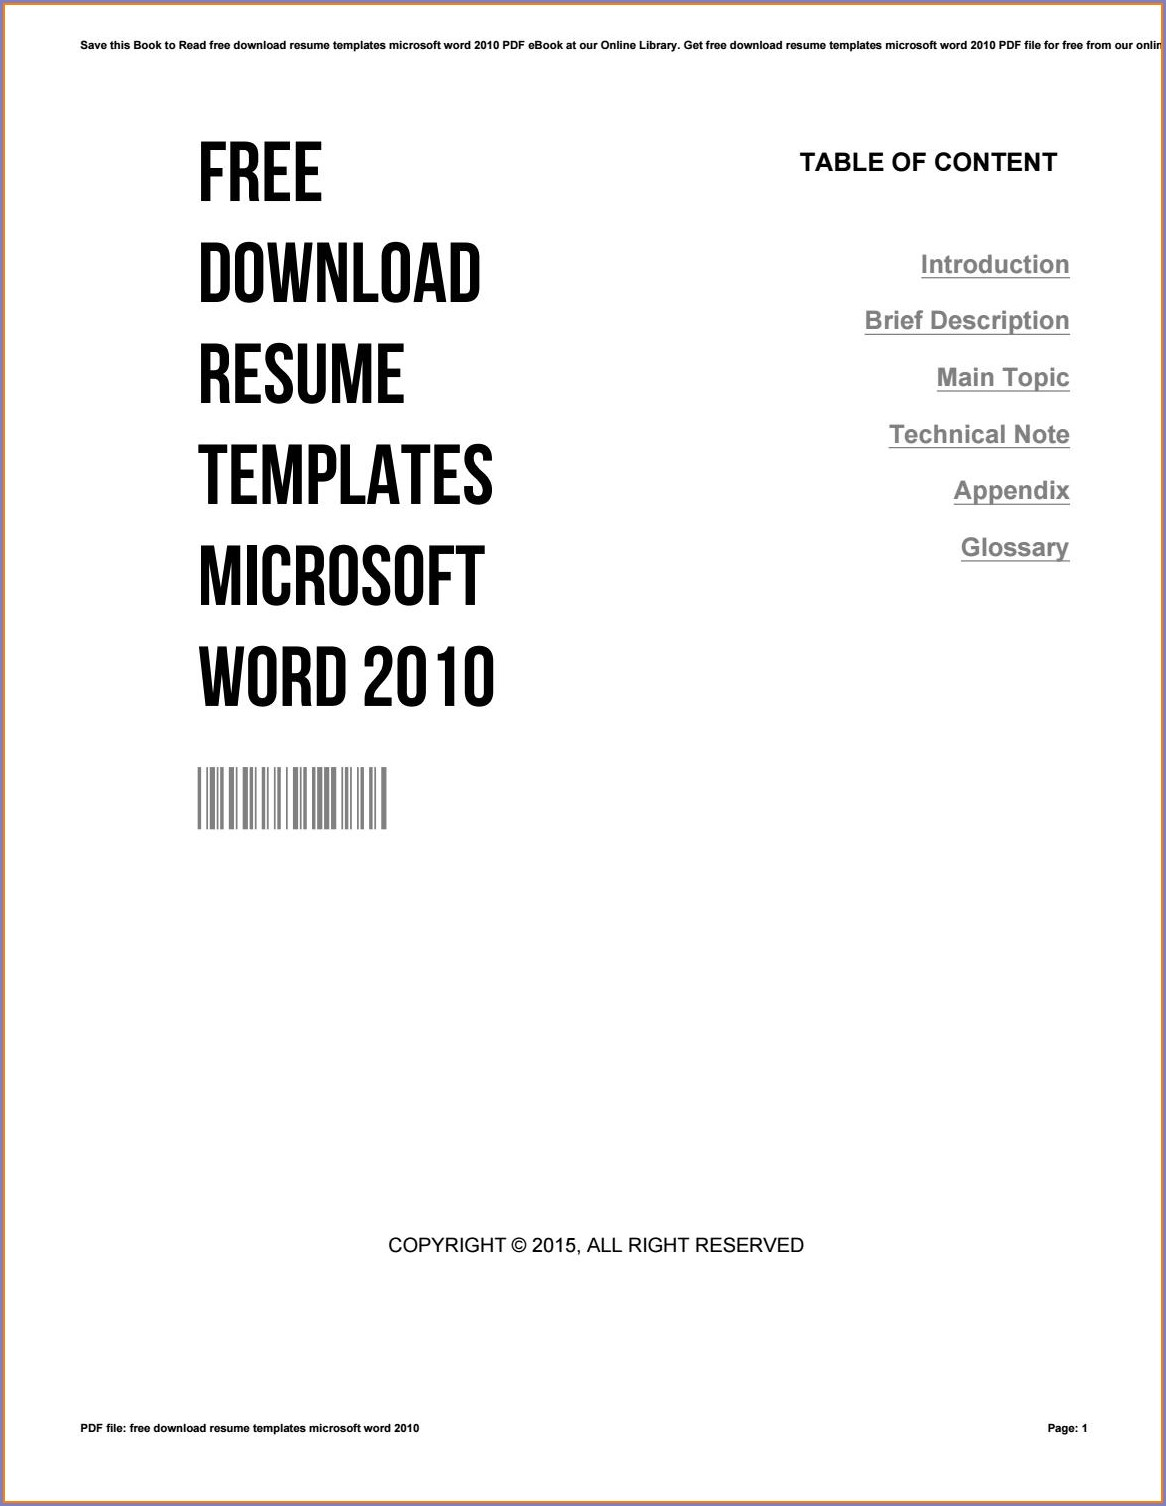 Microsoft Word 2010 Free Resume Templates